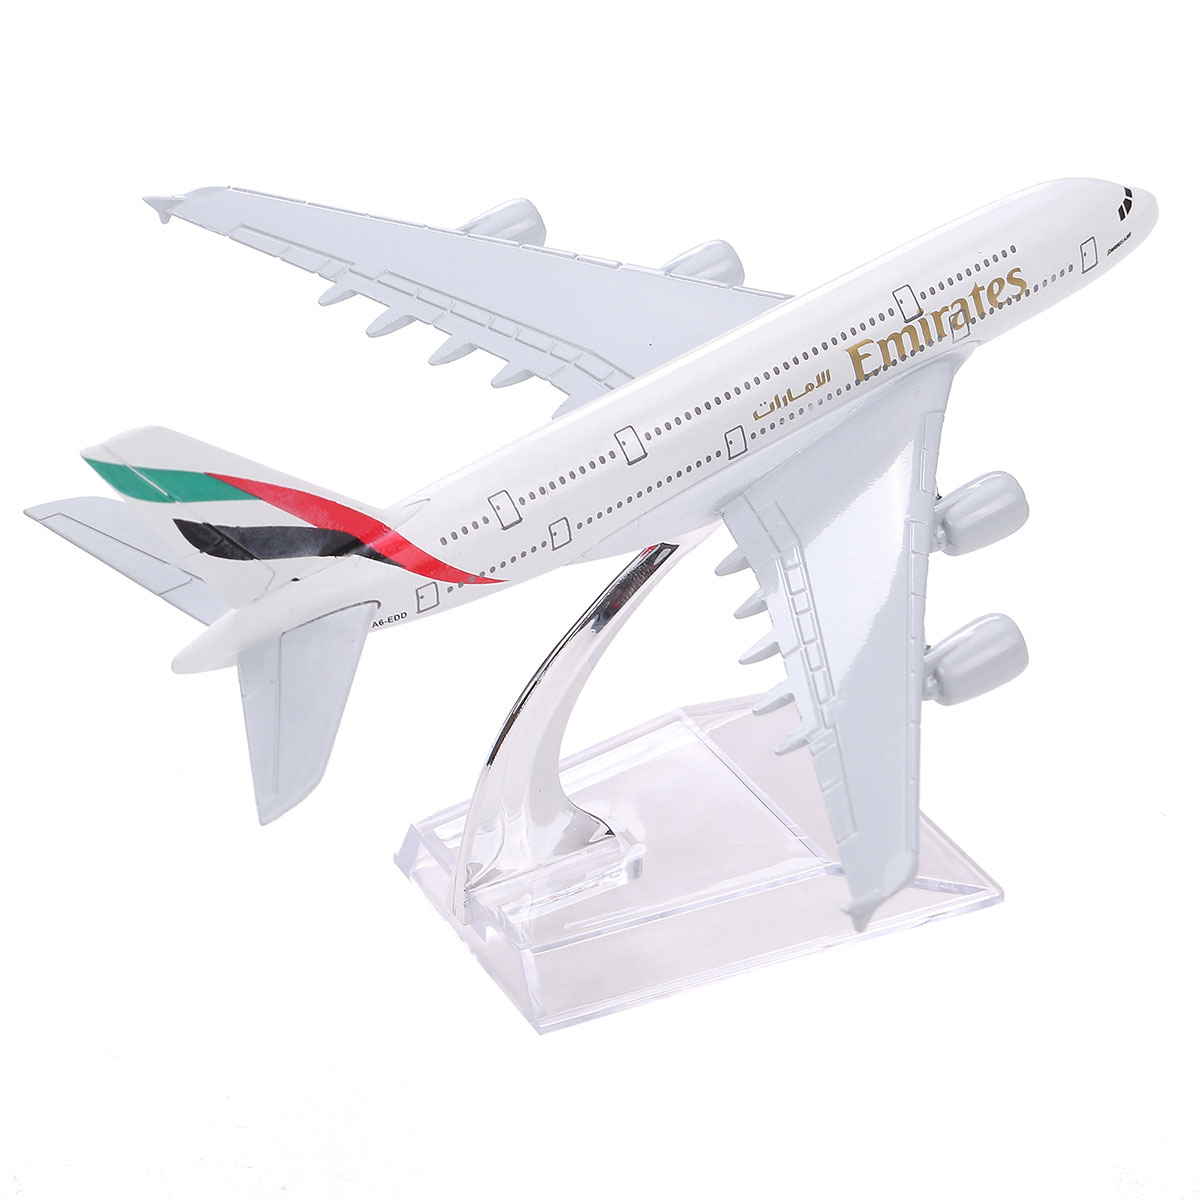 Brand New Airbus380 Emirates Airlines A-380 Aircraft Aeroplan 16cm Diecast Model United Arab Emirates A380 High Simulation emirates concorde hotel